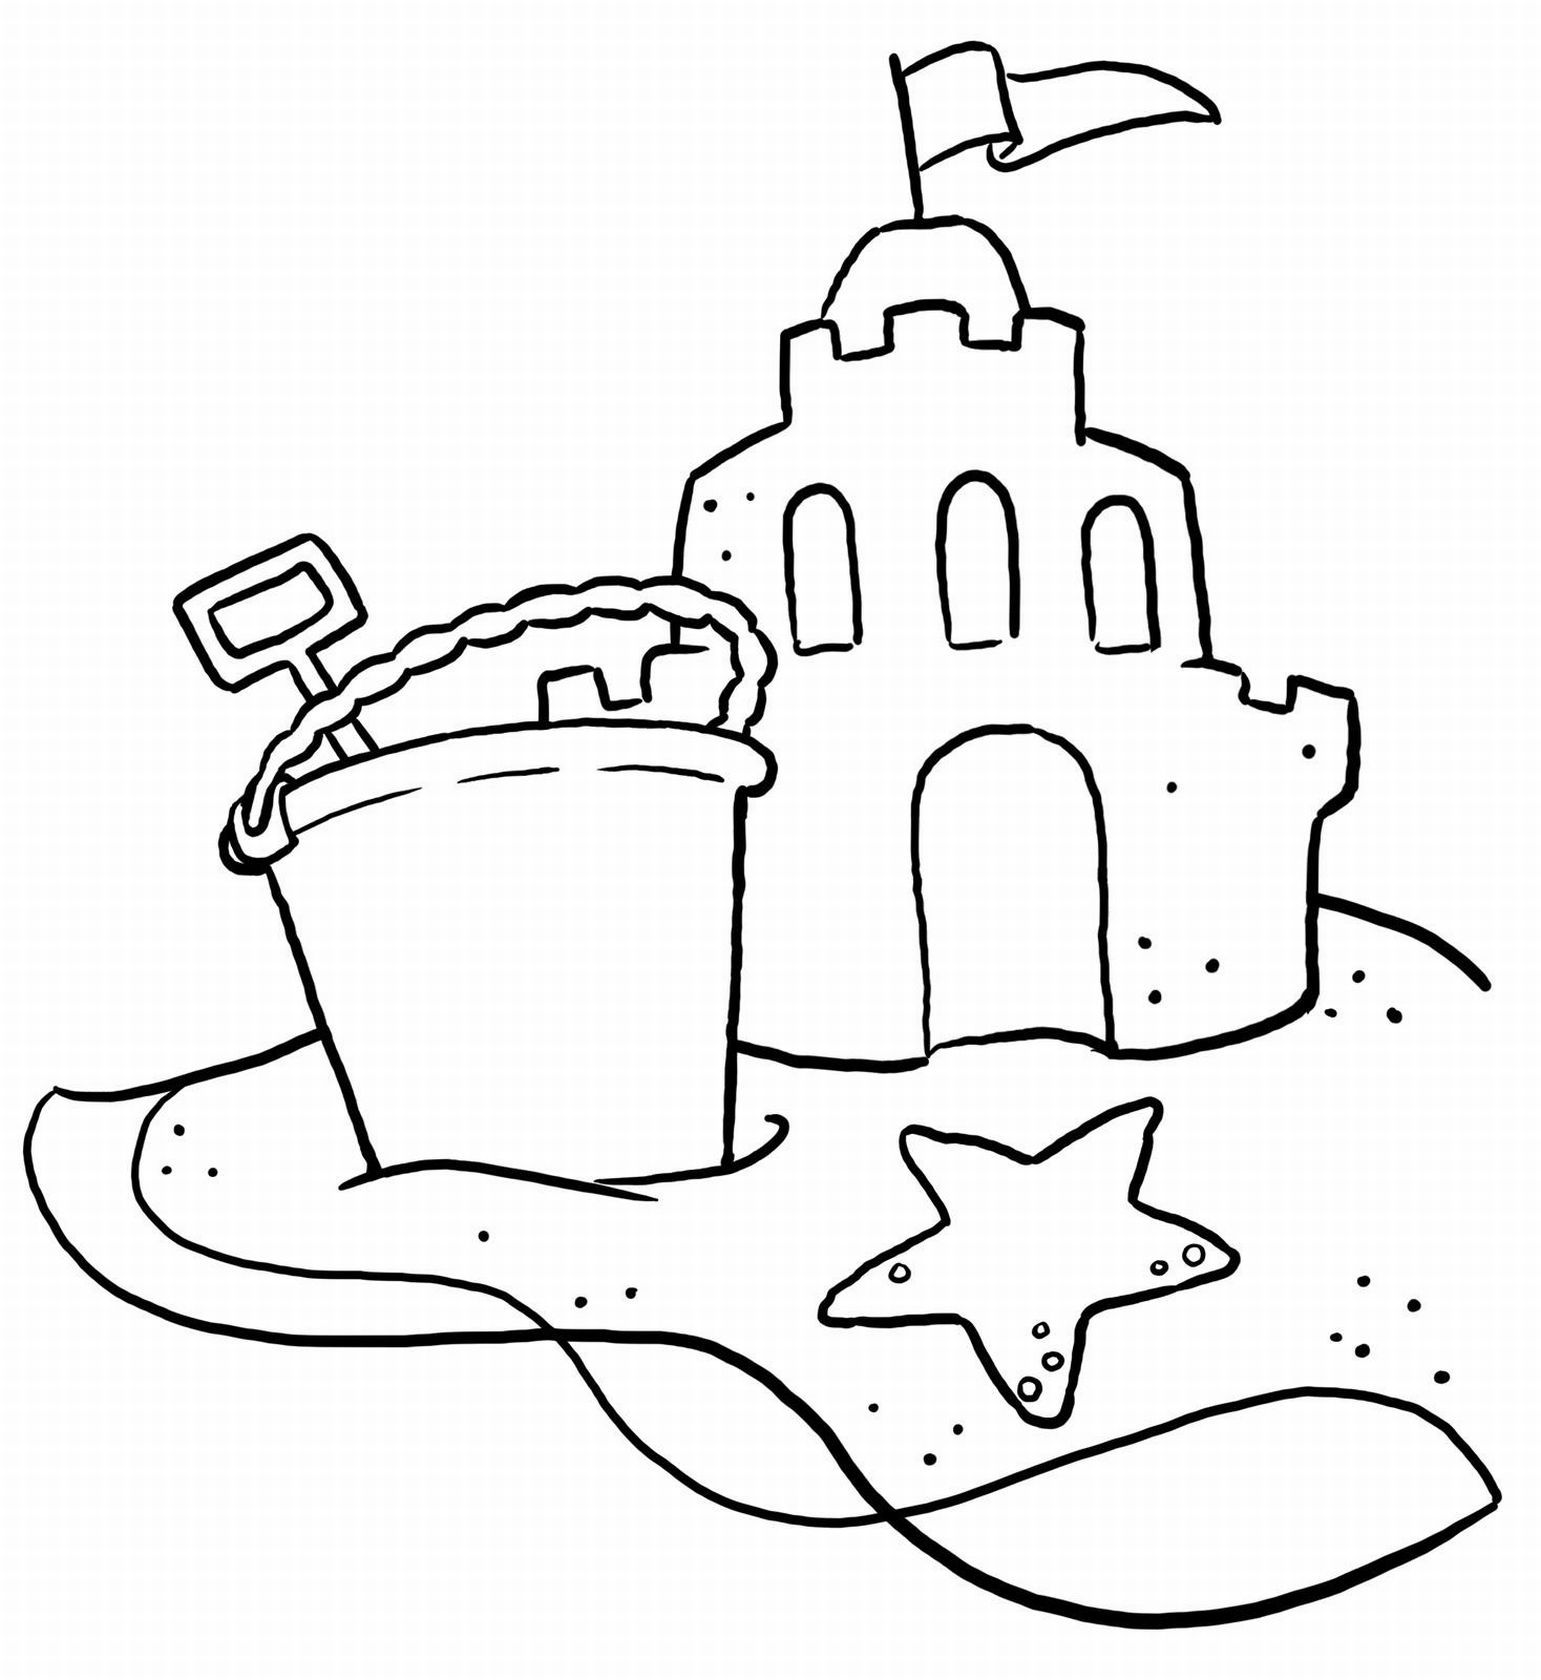 Kids coloring book pages free - Beach Coloring Pages 20 Free Printable Sheets To Color